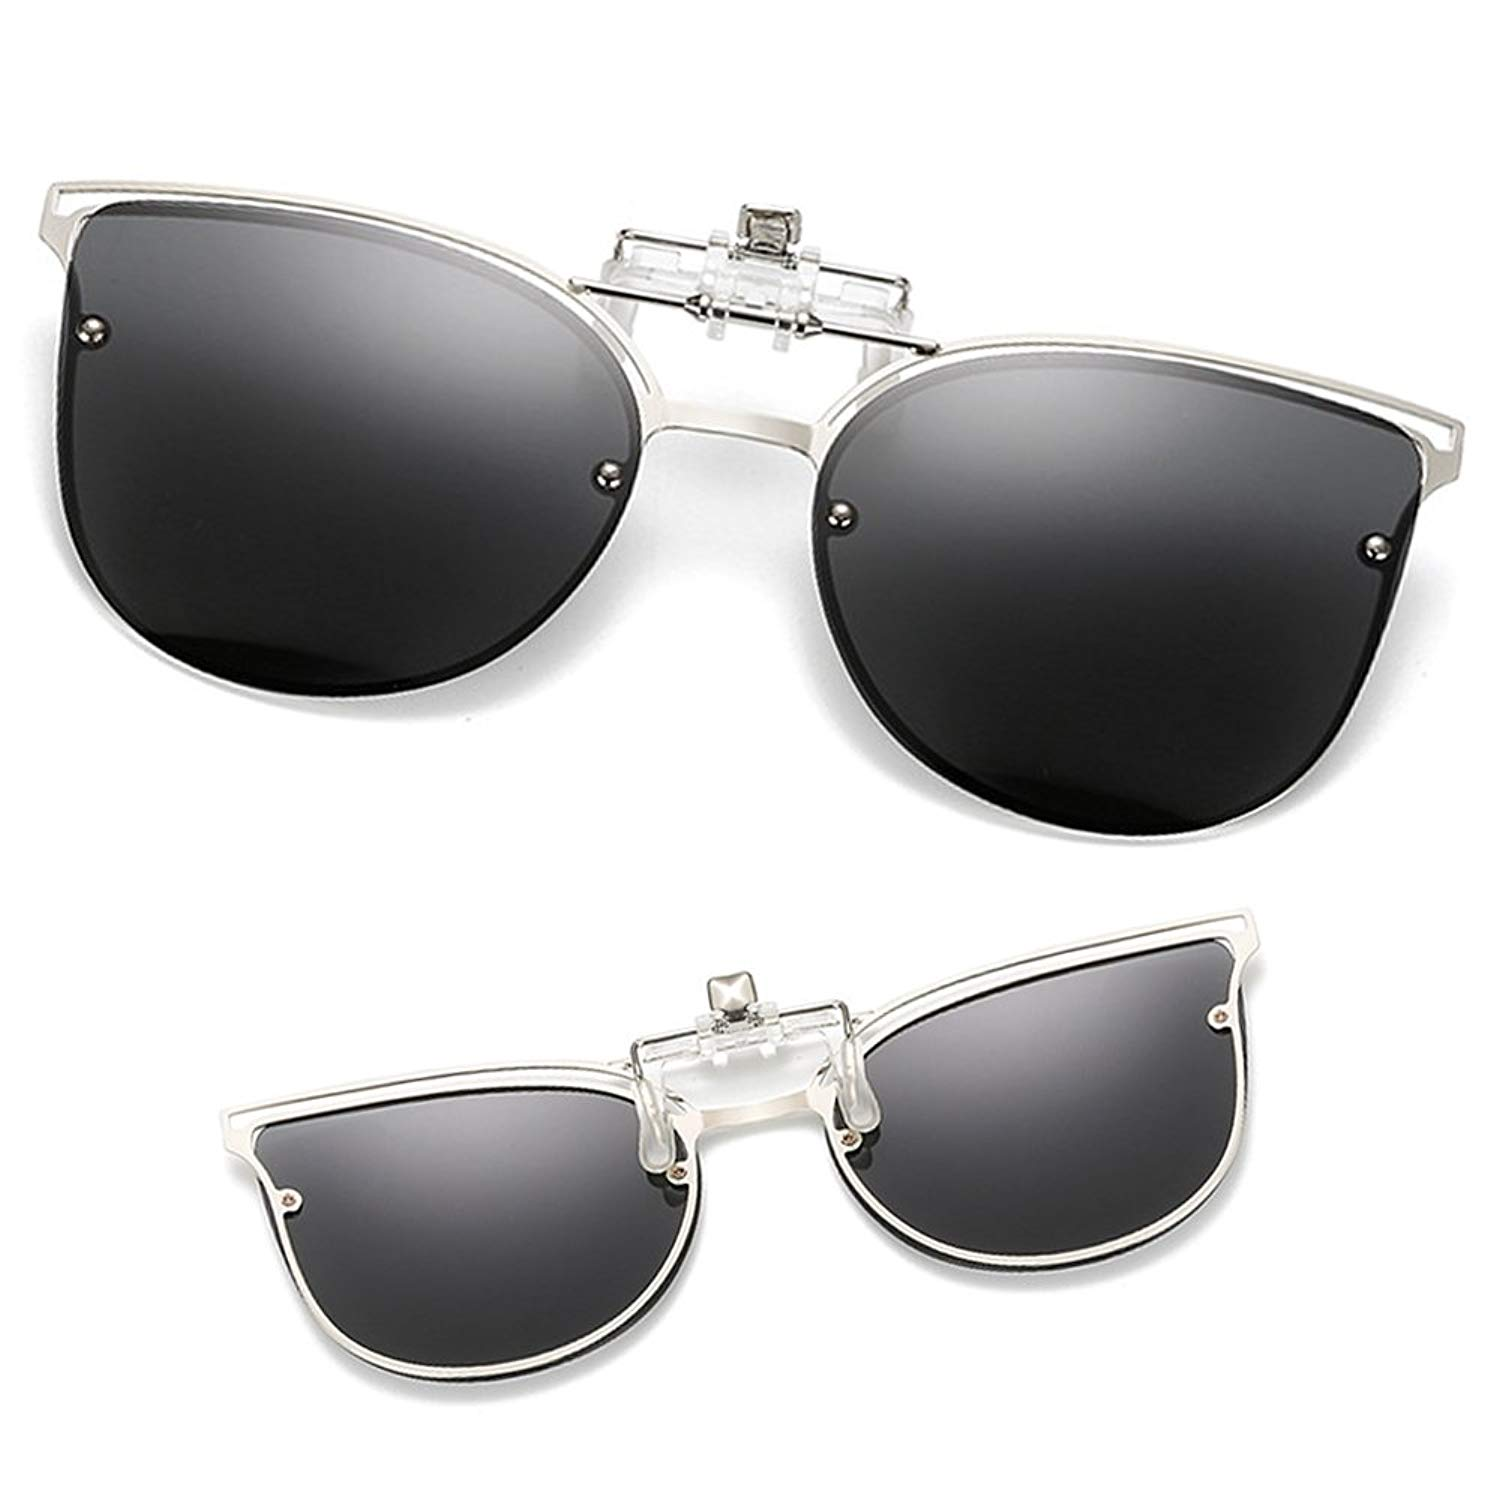 0b2037e153 Get Quotations · Clip-on Sunglasses For Women New Design Polarized Fashion  Sunglasses - 1 Piece